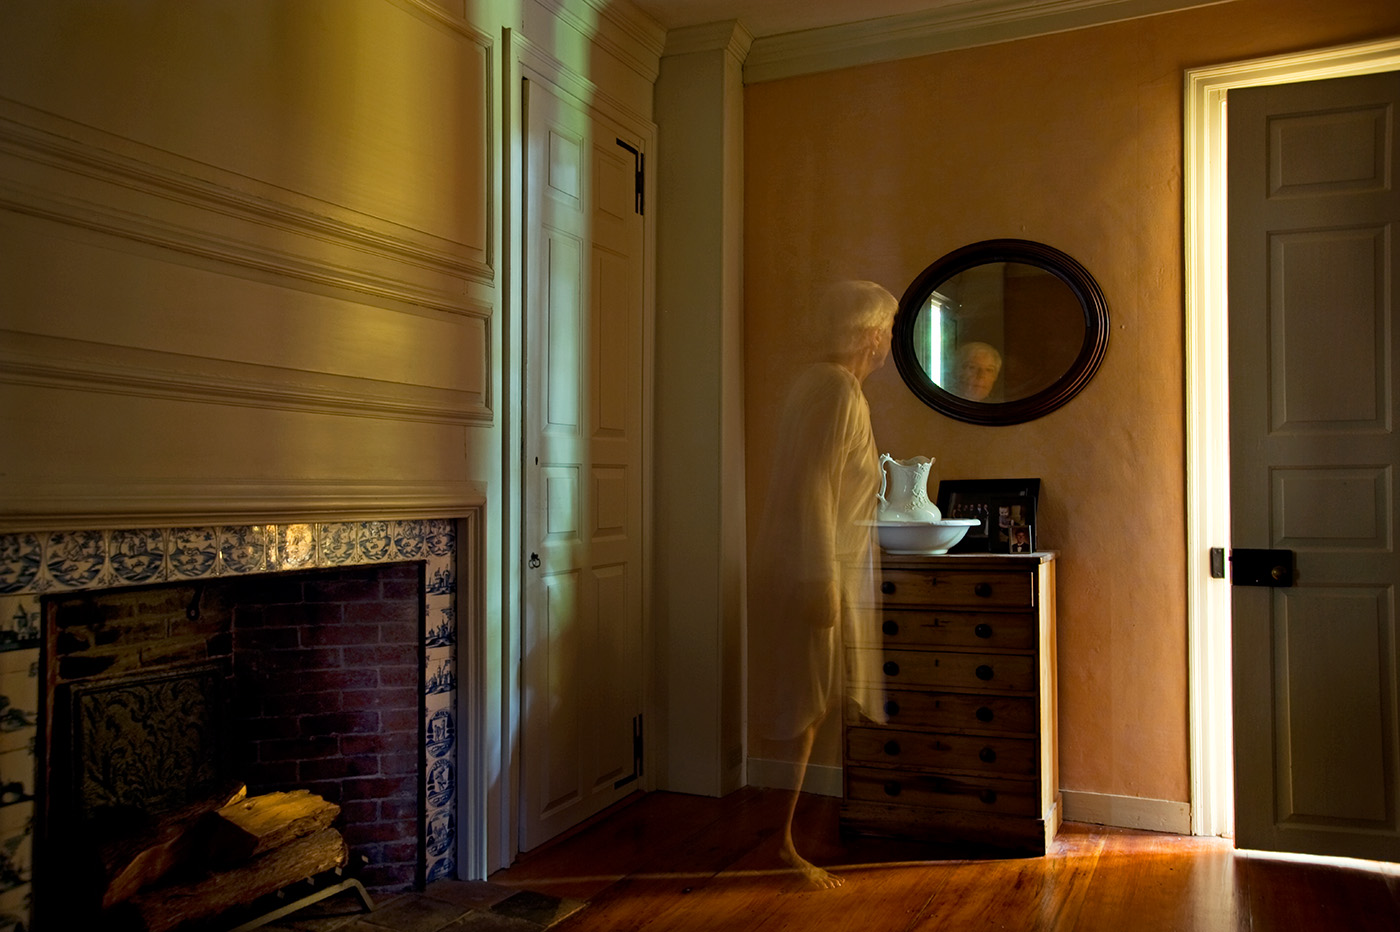 GHOST_IN_THE_HOUSE